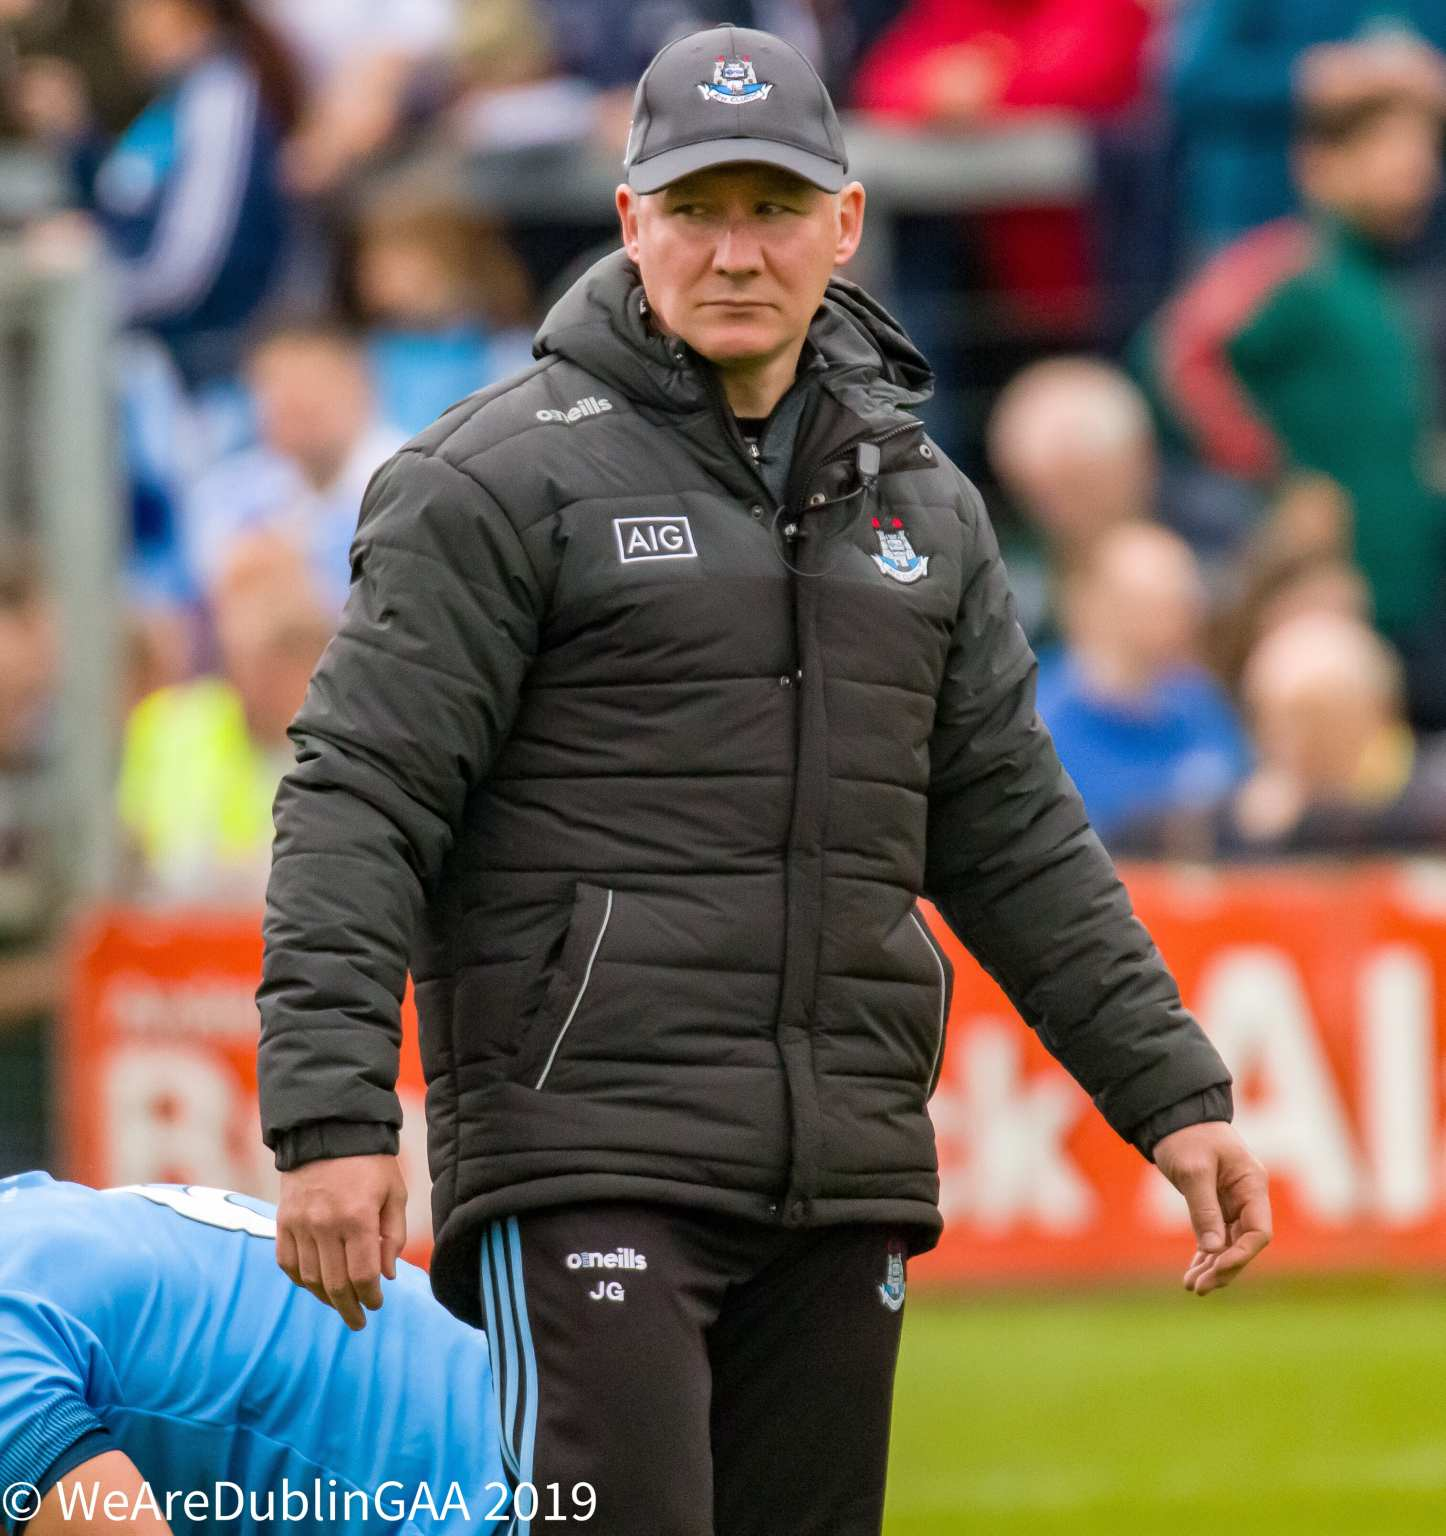 Dublin manager Jim Gavin who expressed his satisfaction in his team's performance against Kildare in their Leinster semi final win